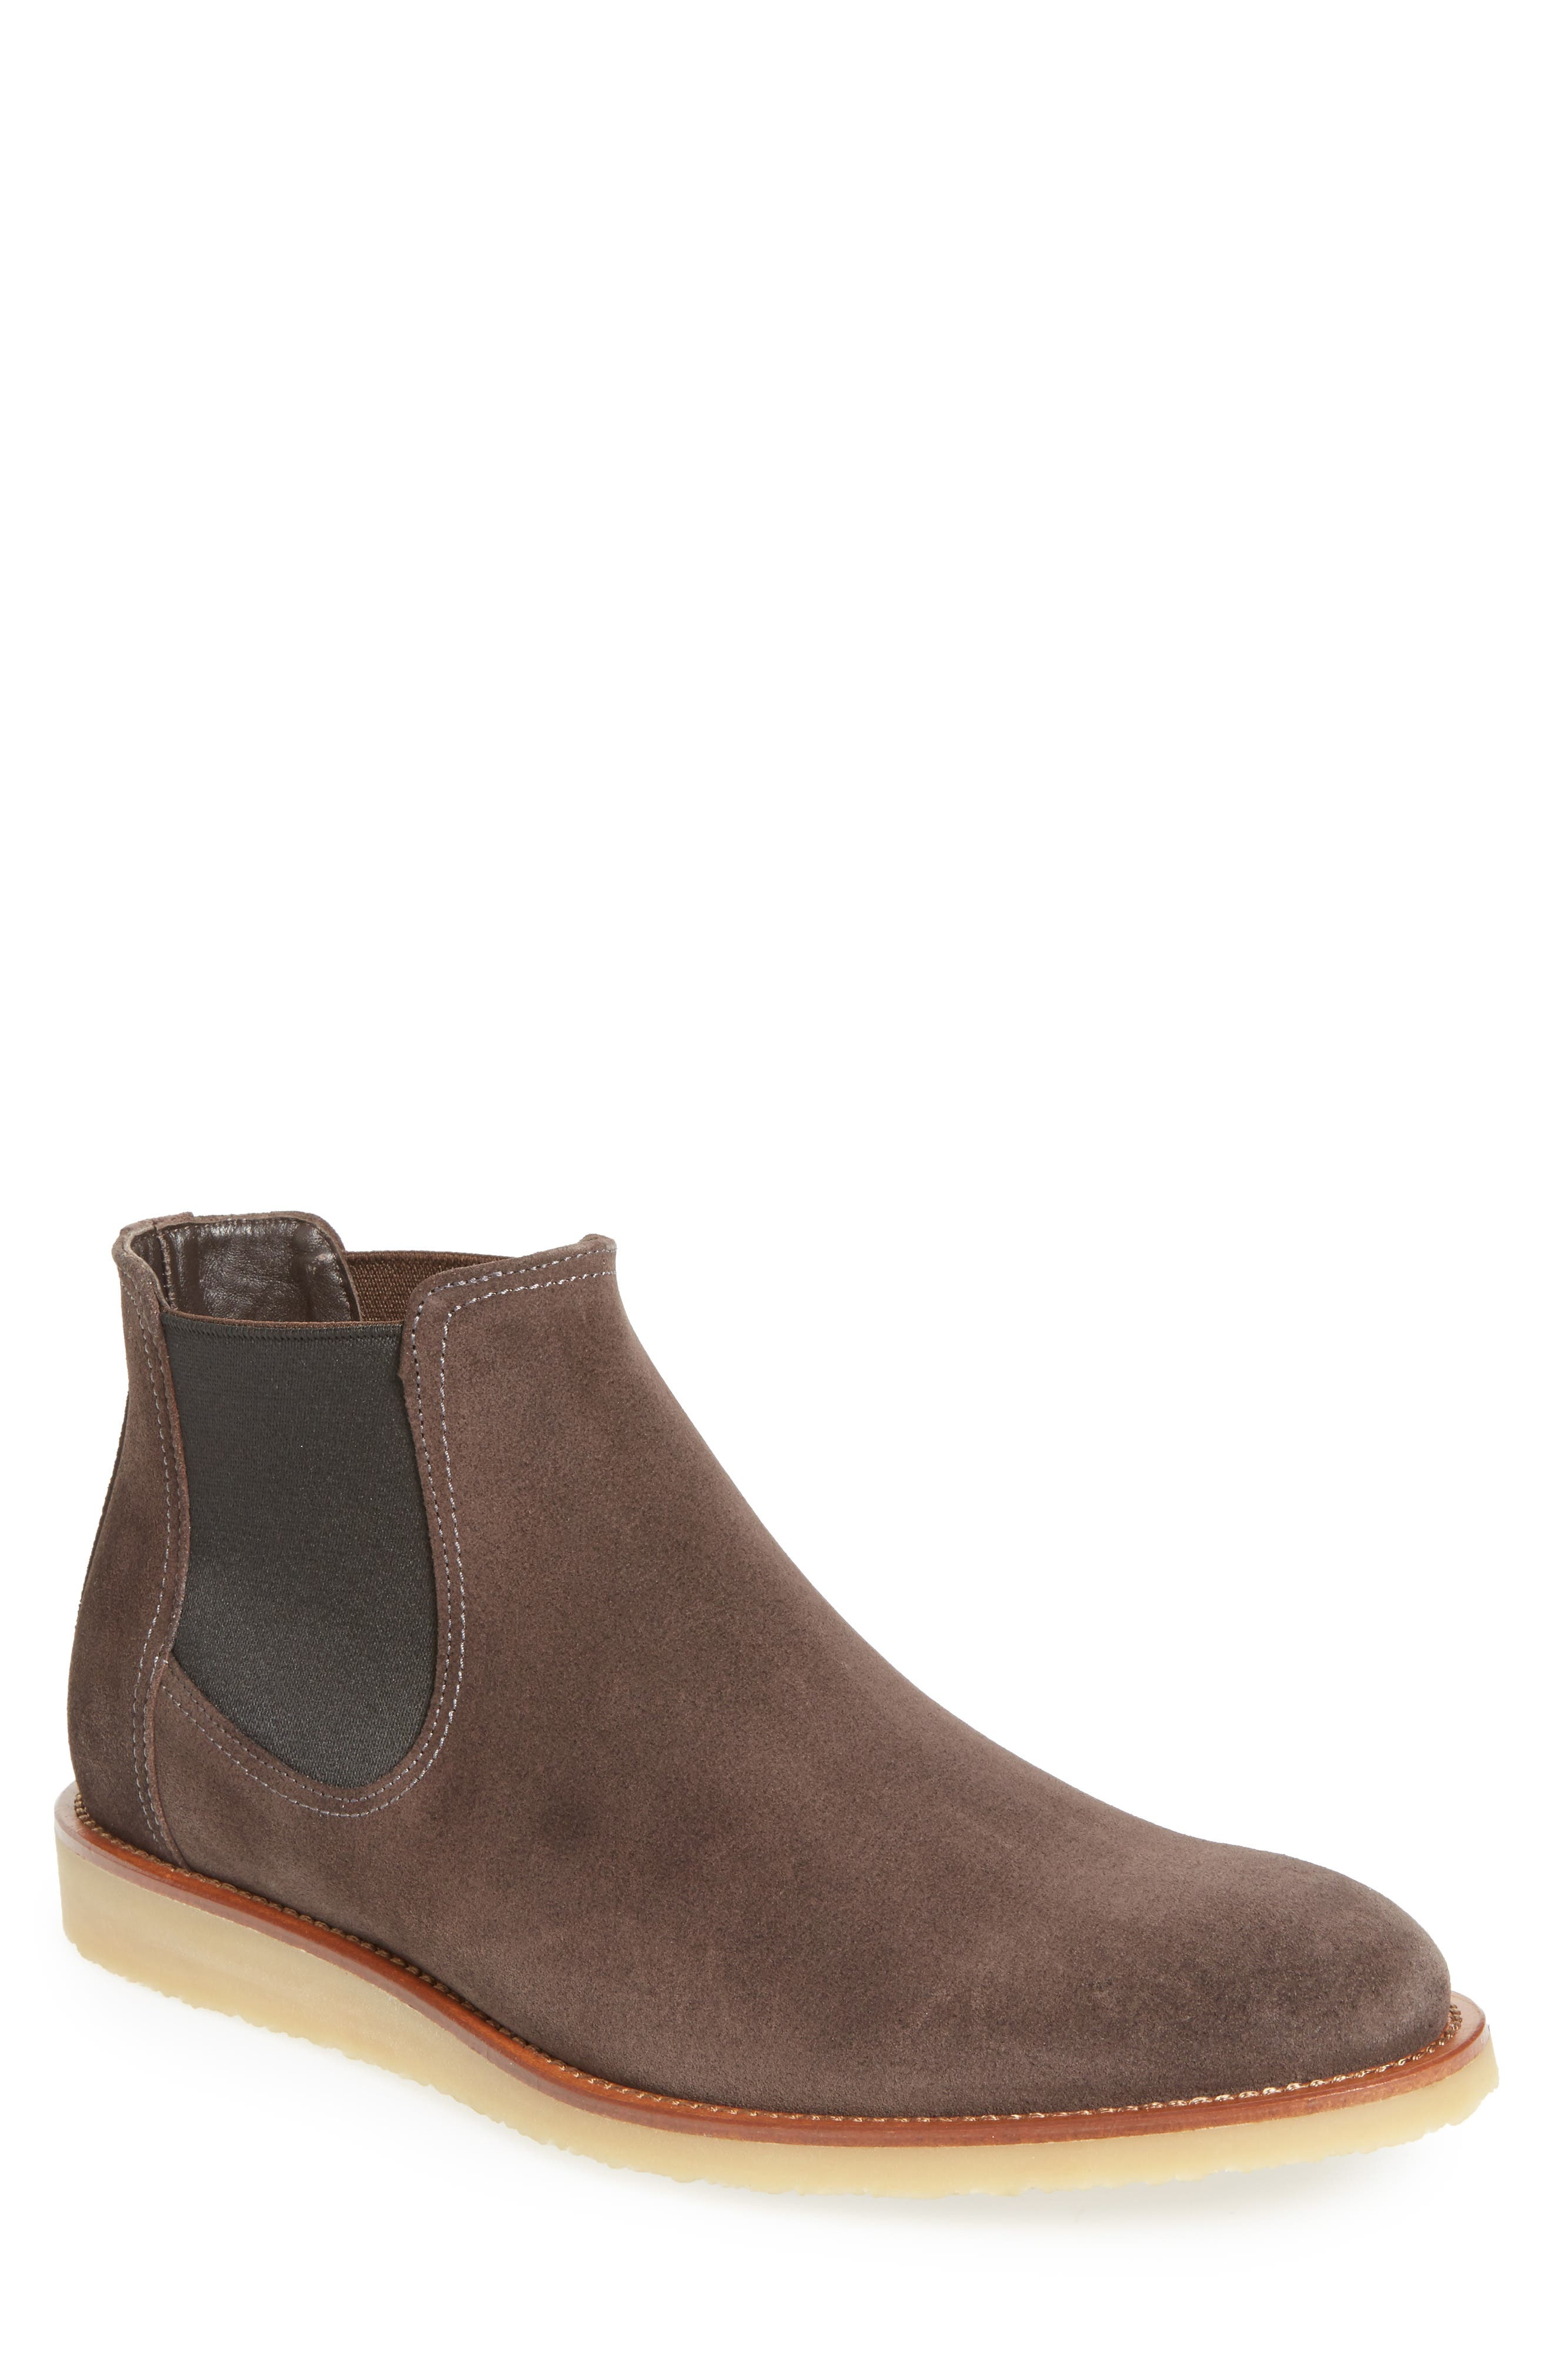 March Chelsea Boot,                         Main,                         color, 033